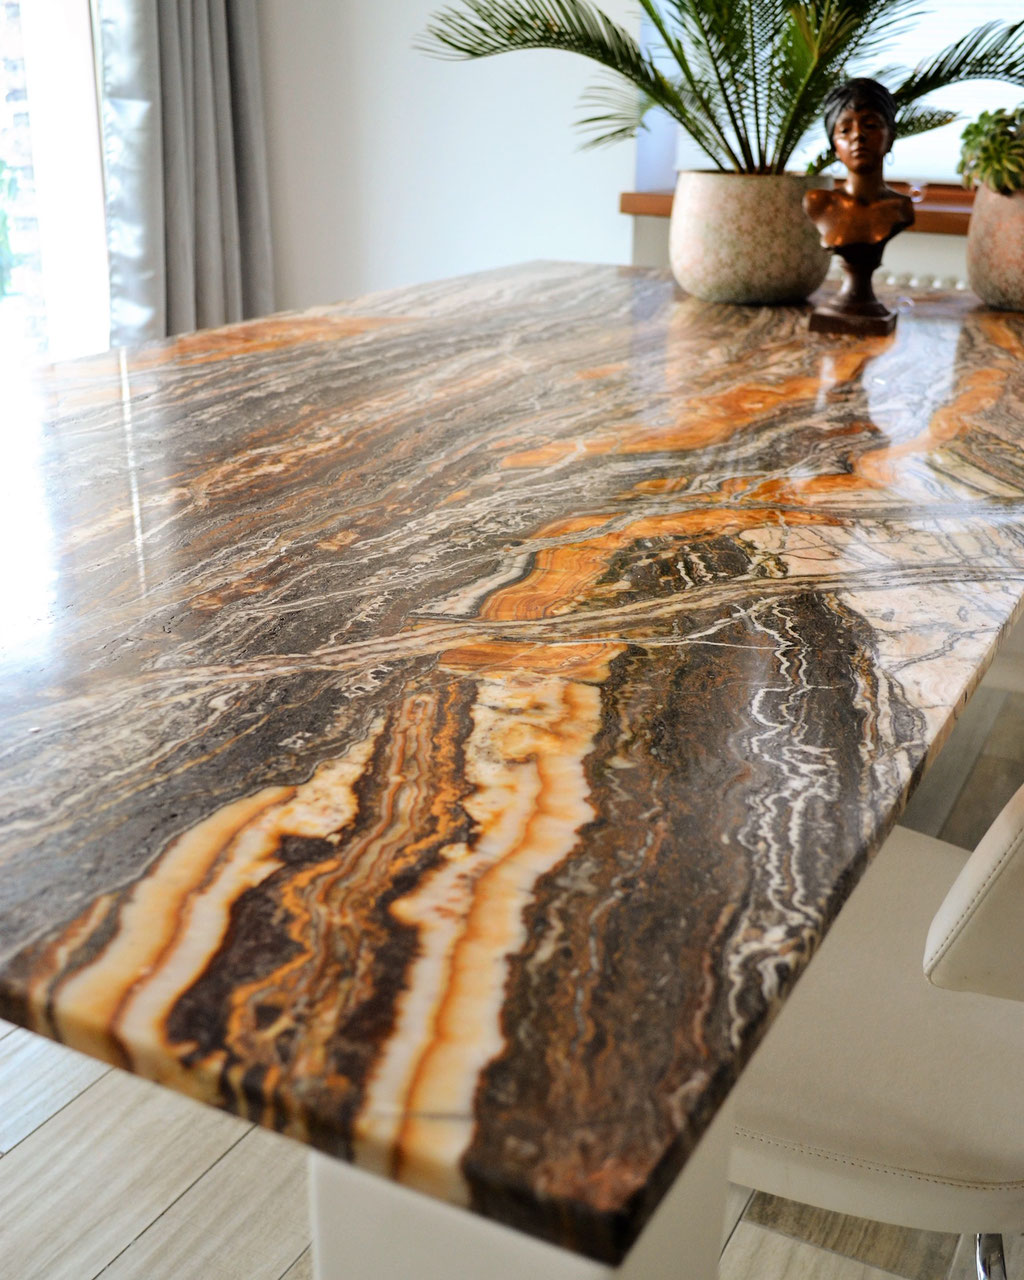 Onyx Jurrasic table